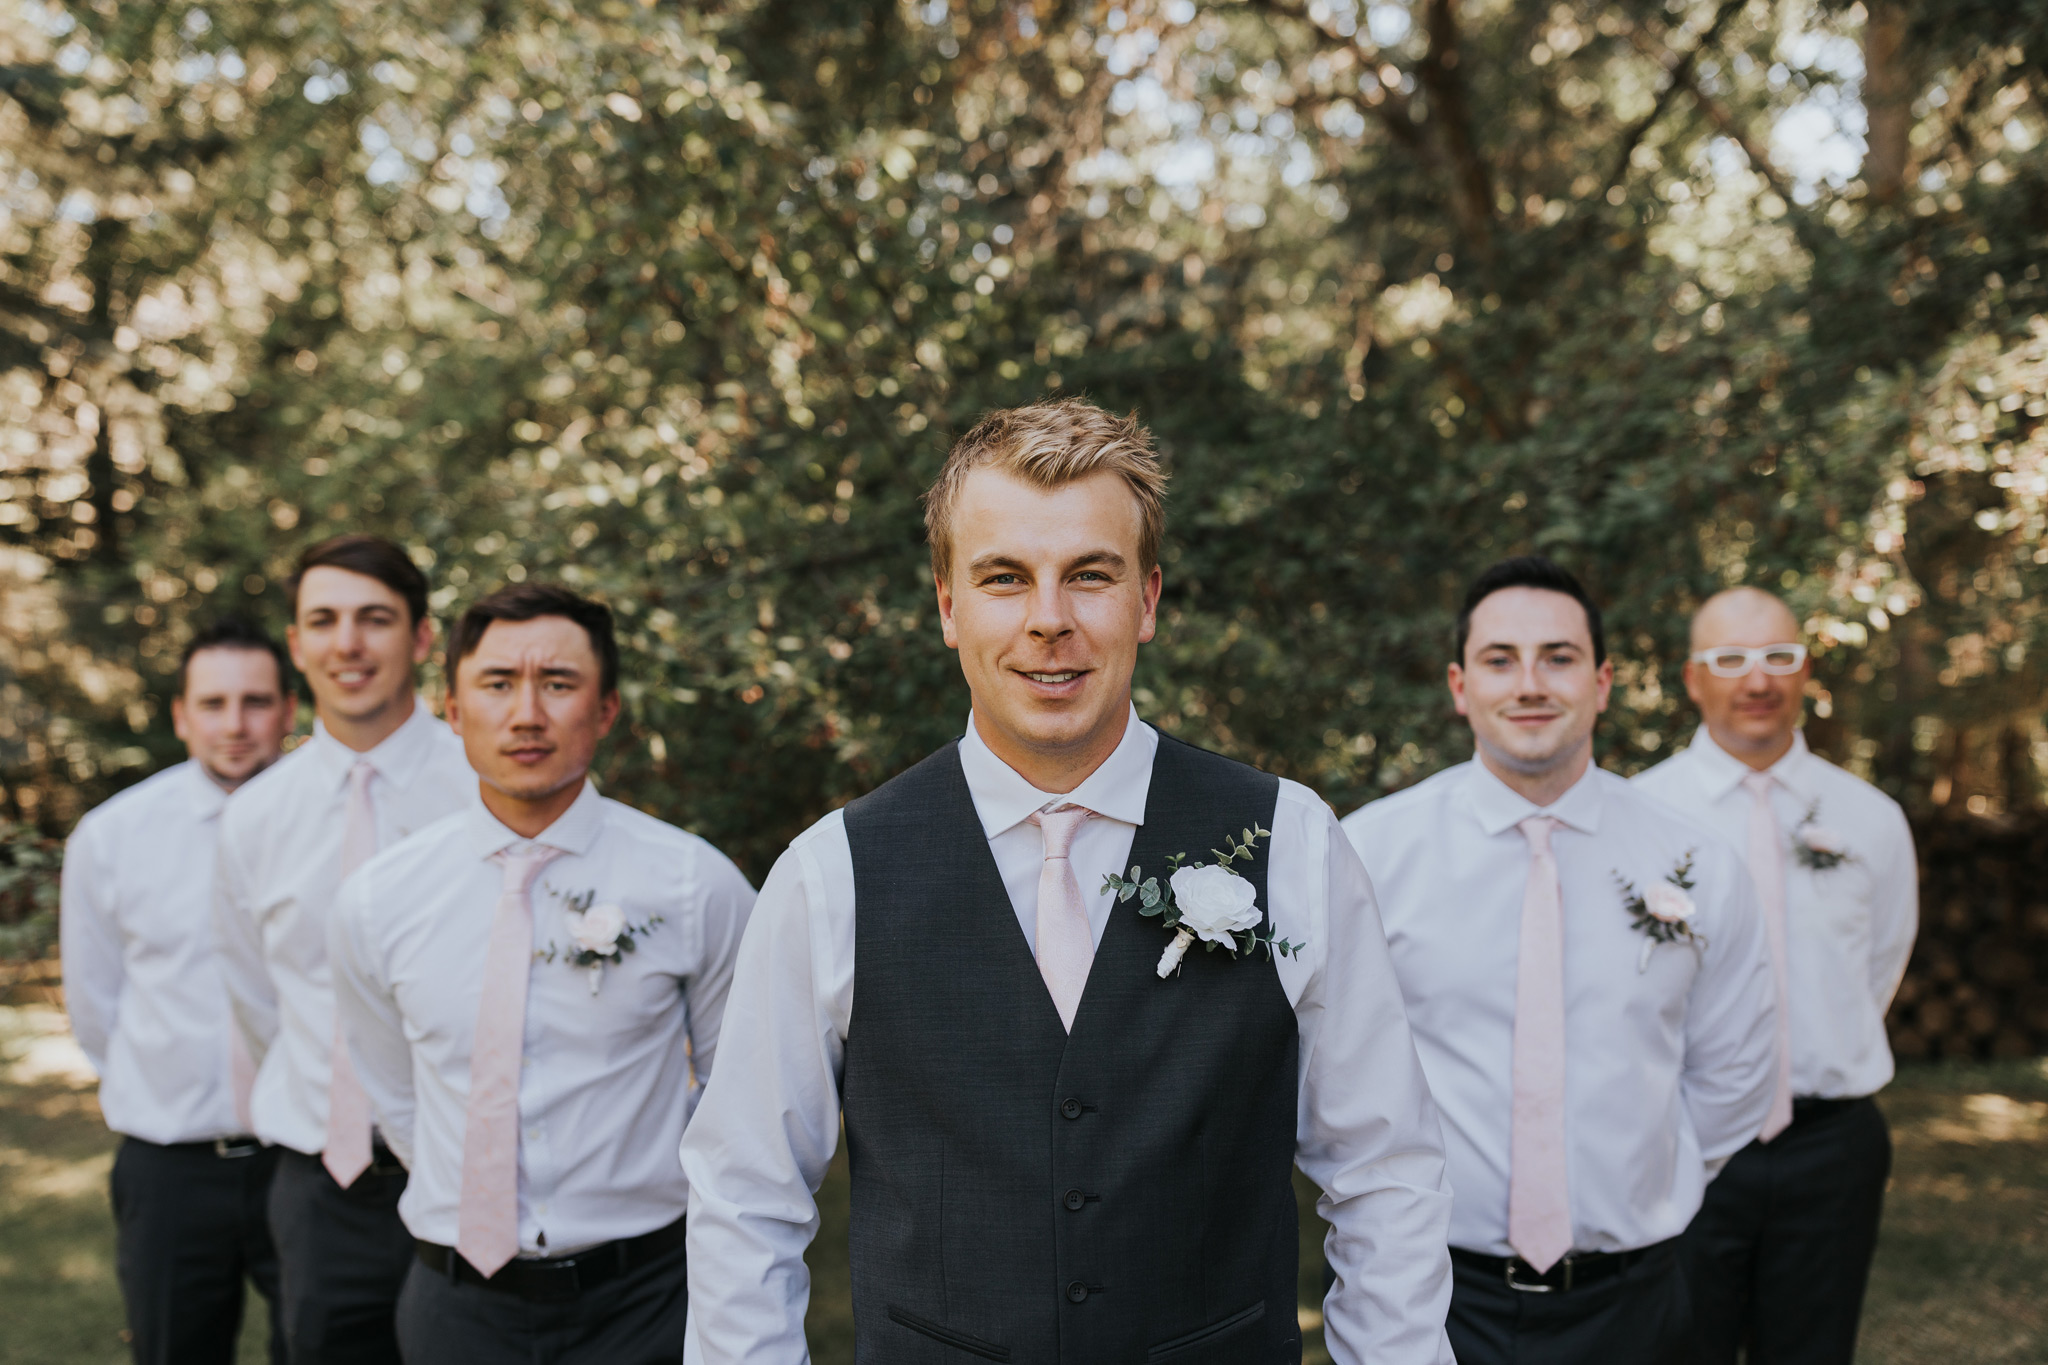 groom stands with groomsmen behind him